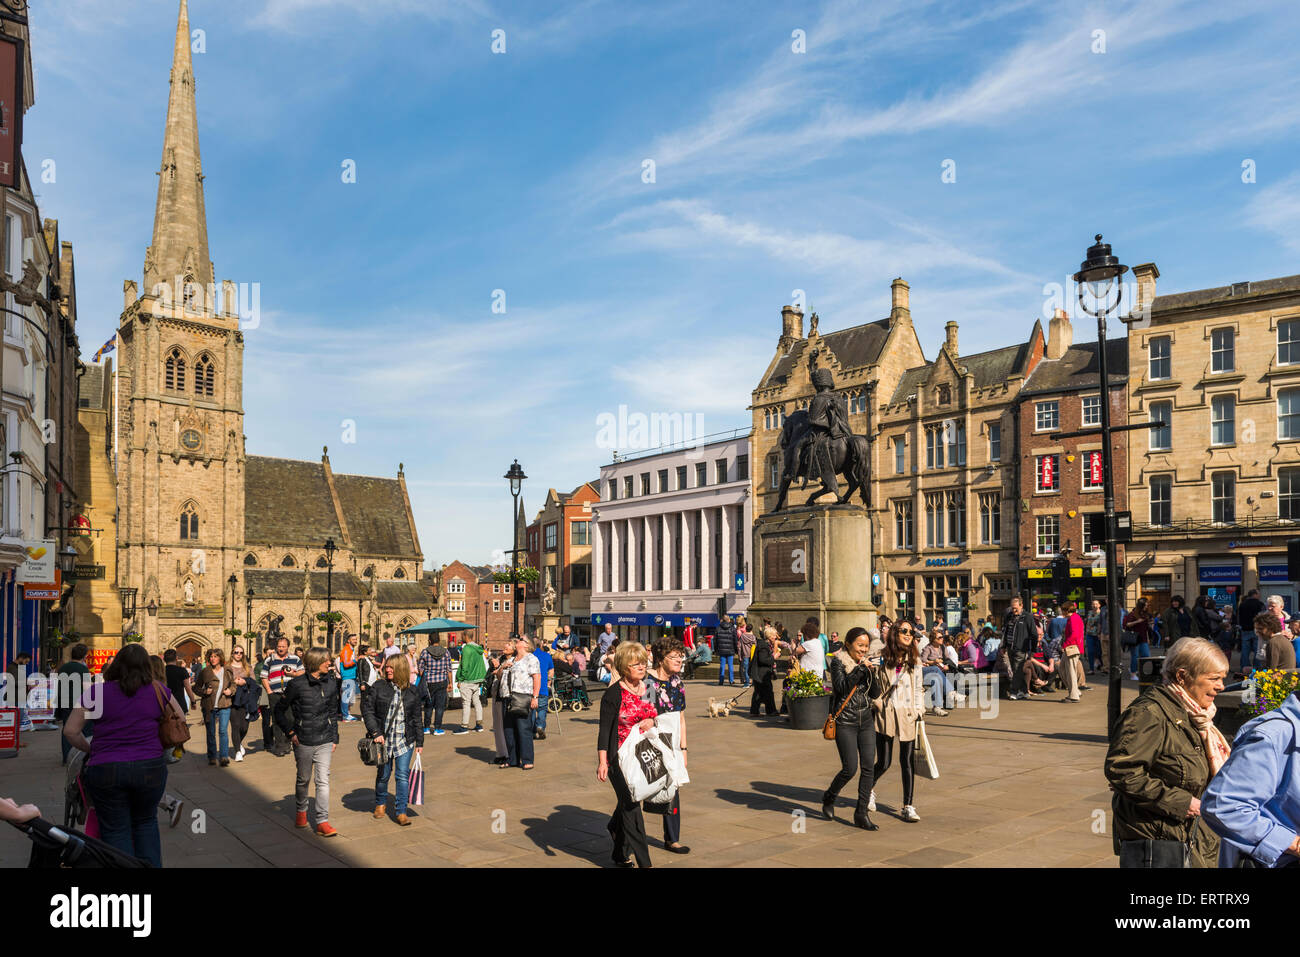 People shopping in the Market Place and church of St Nicholas in Durham, England, UK - Stock Image